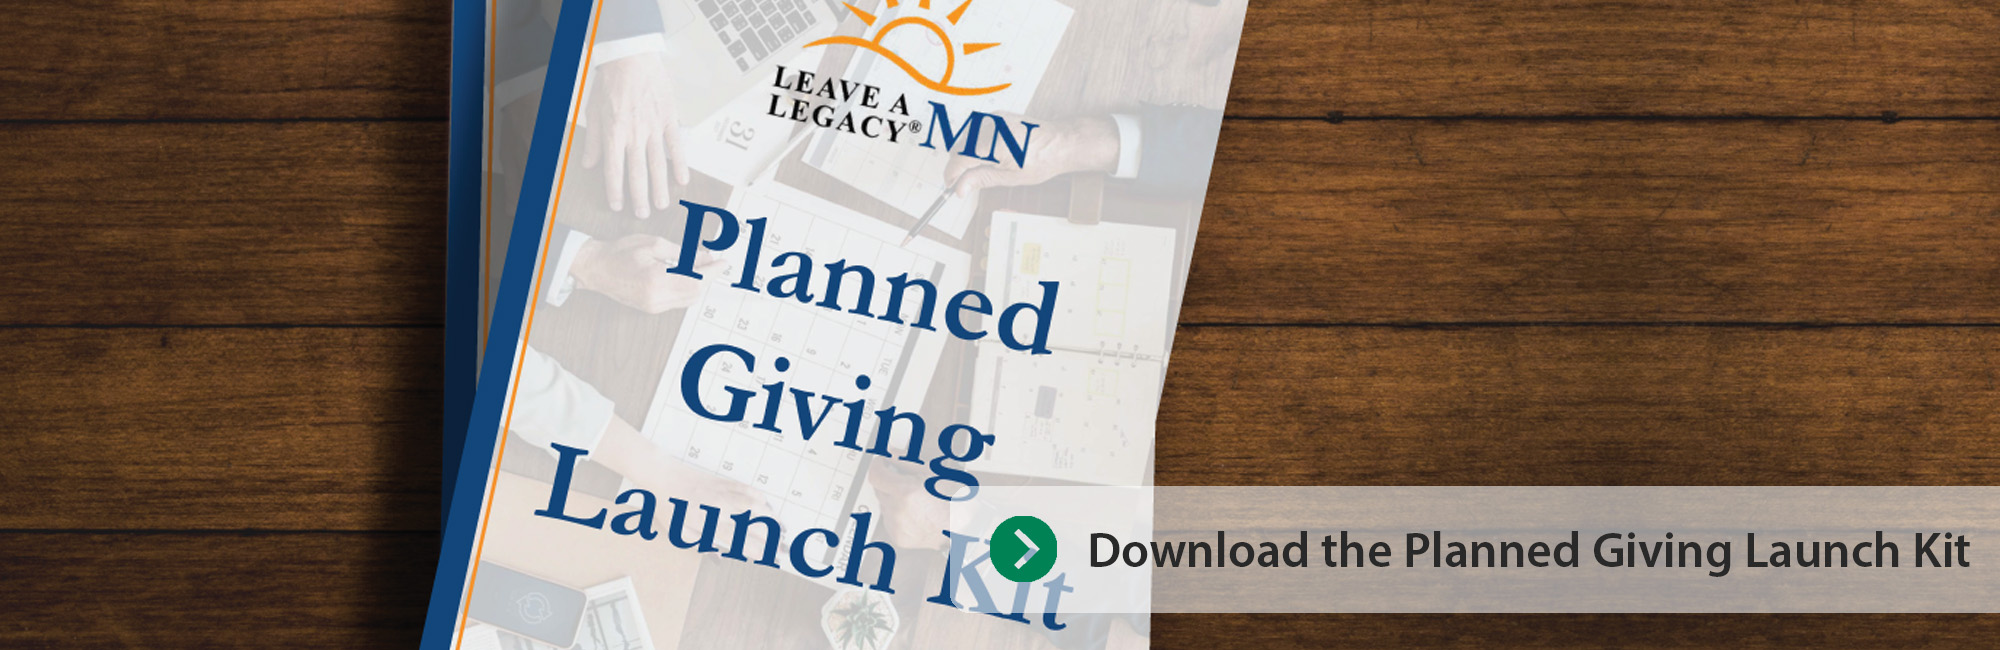 Planned Giving Launch Kit Refresh